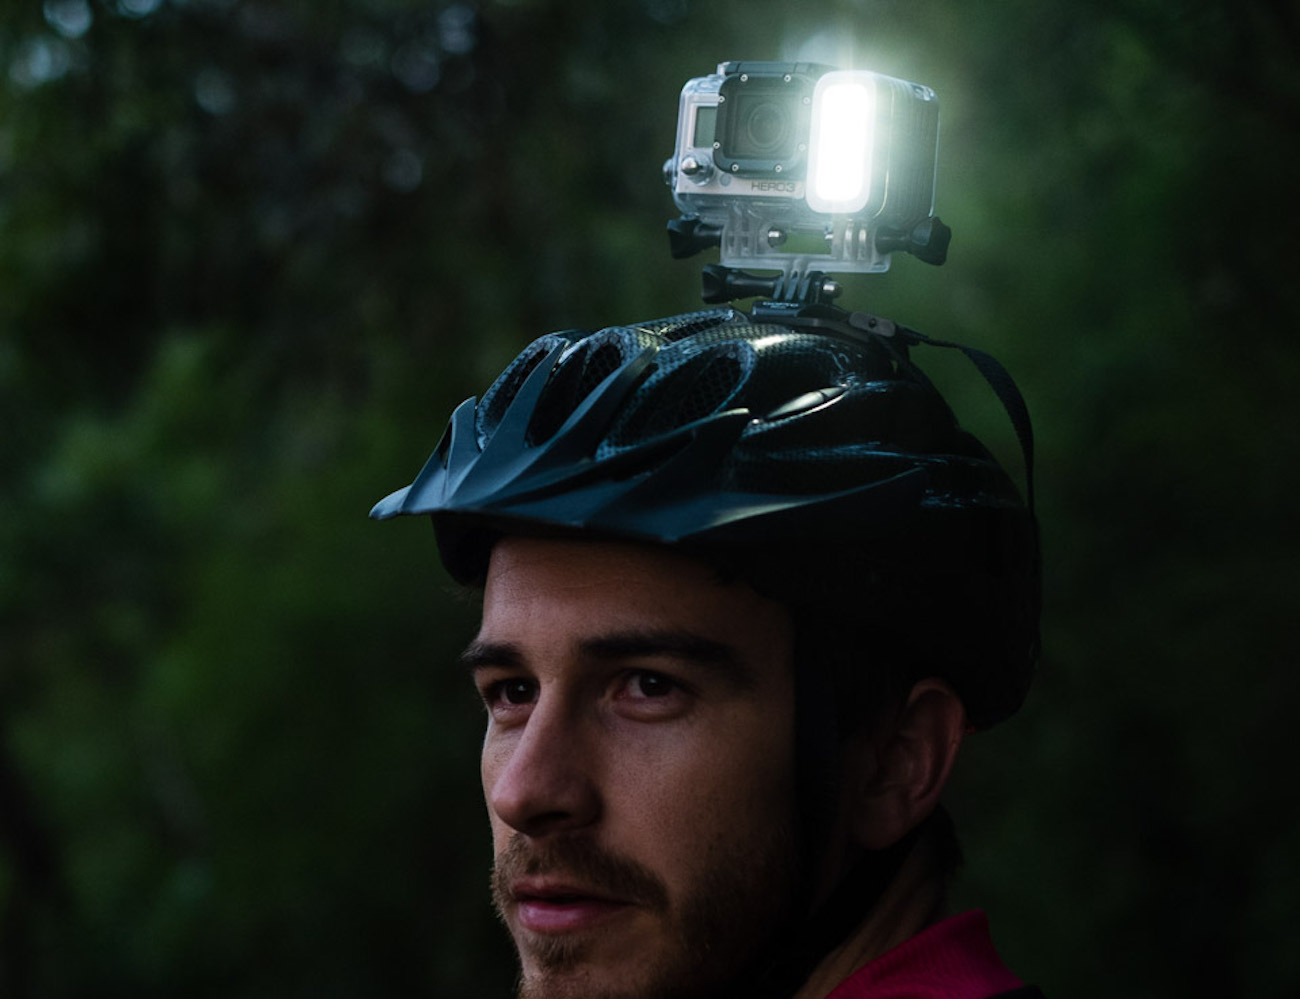 Qudos Action LED Video Light by Knog